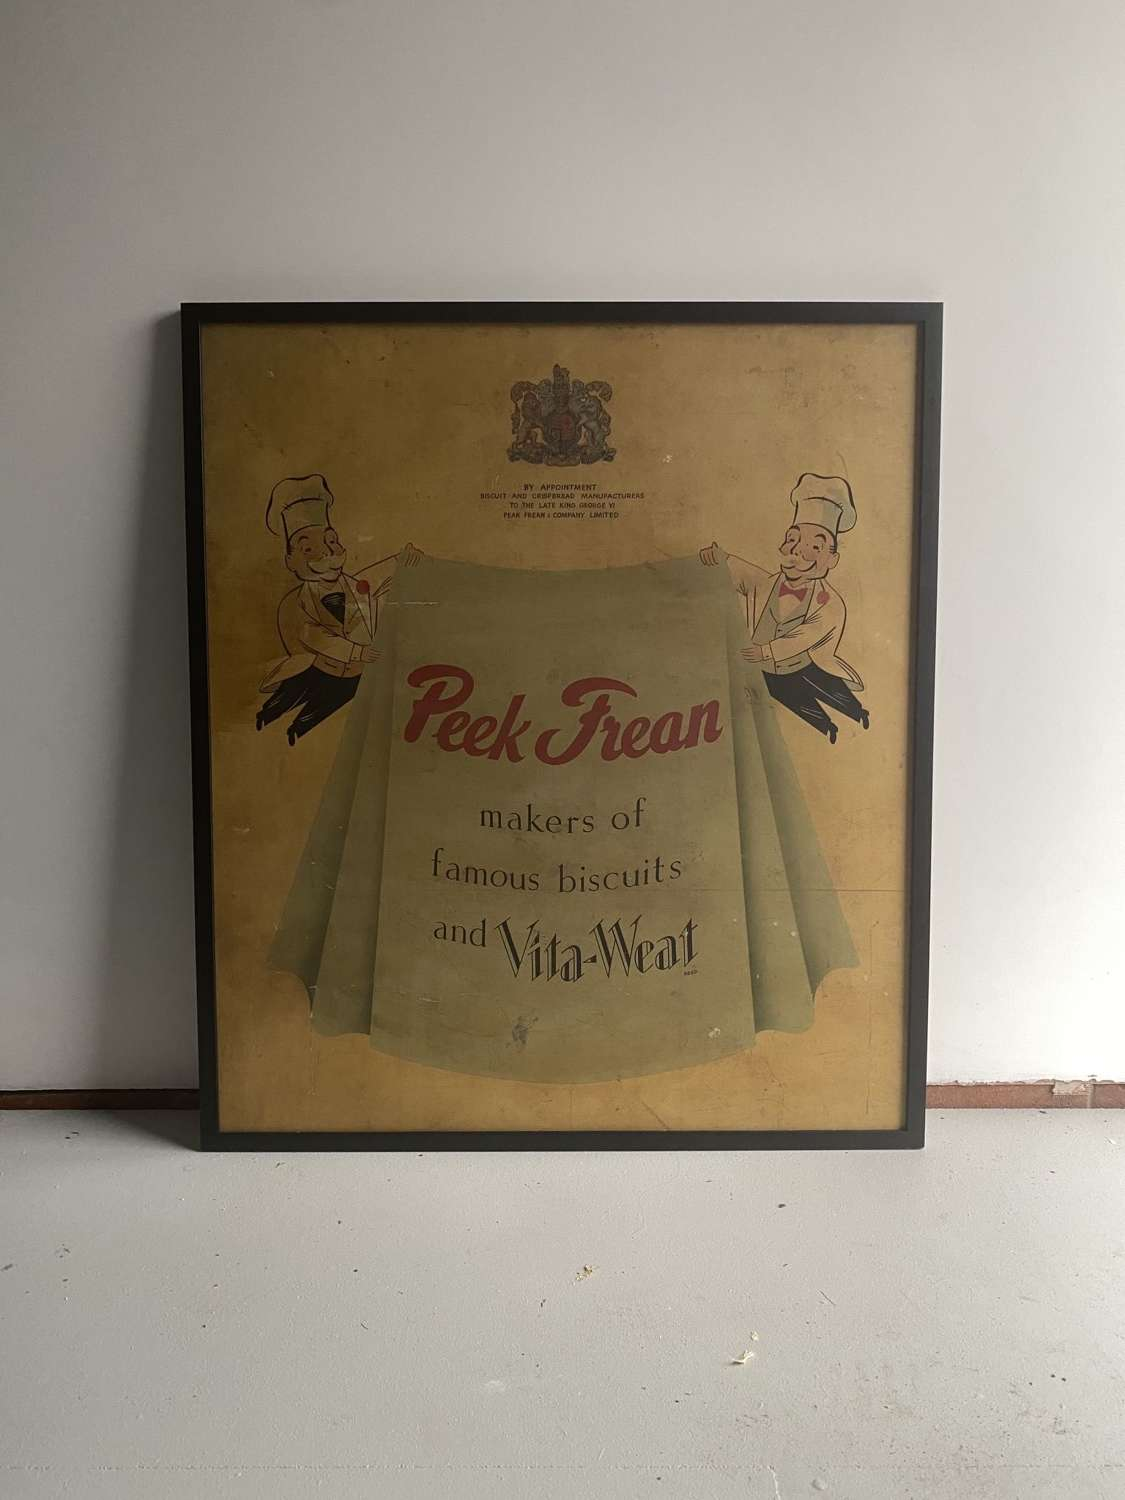 Large Original Advertising Sign for Peek Frean Biscuits c1950.